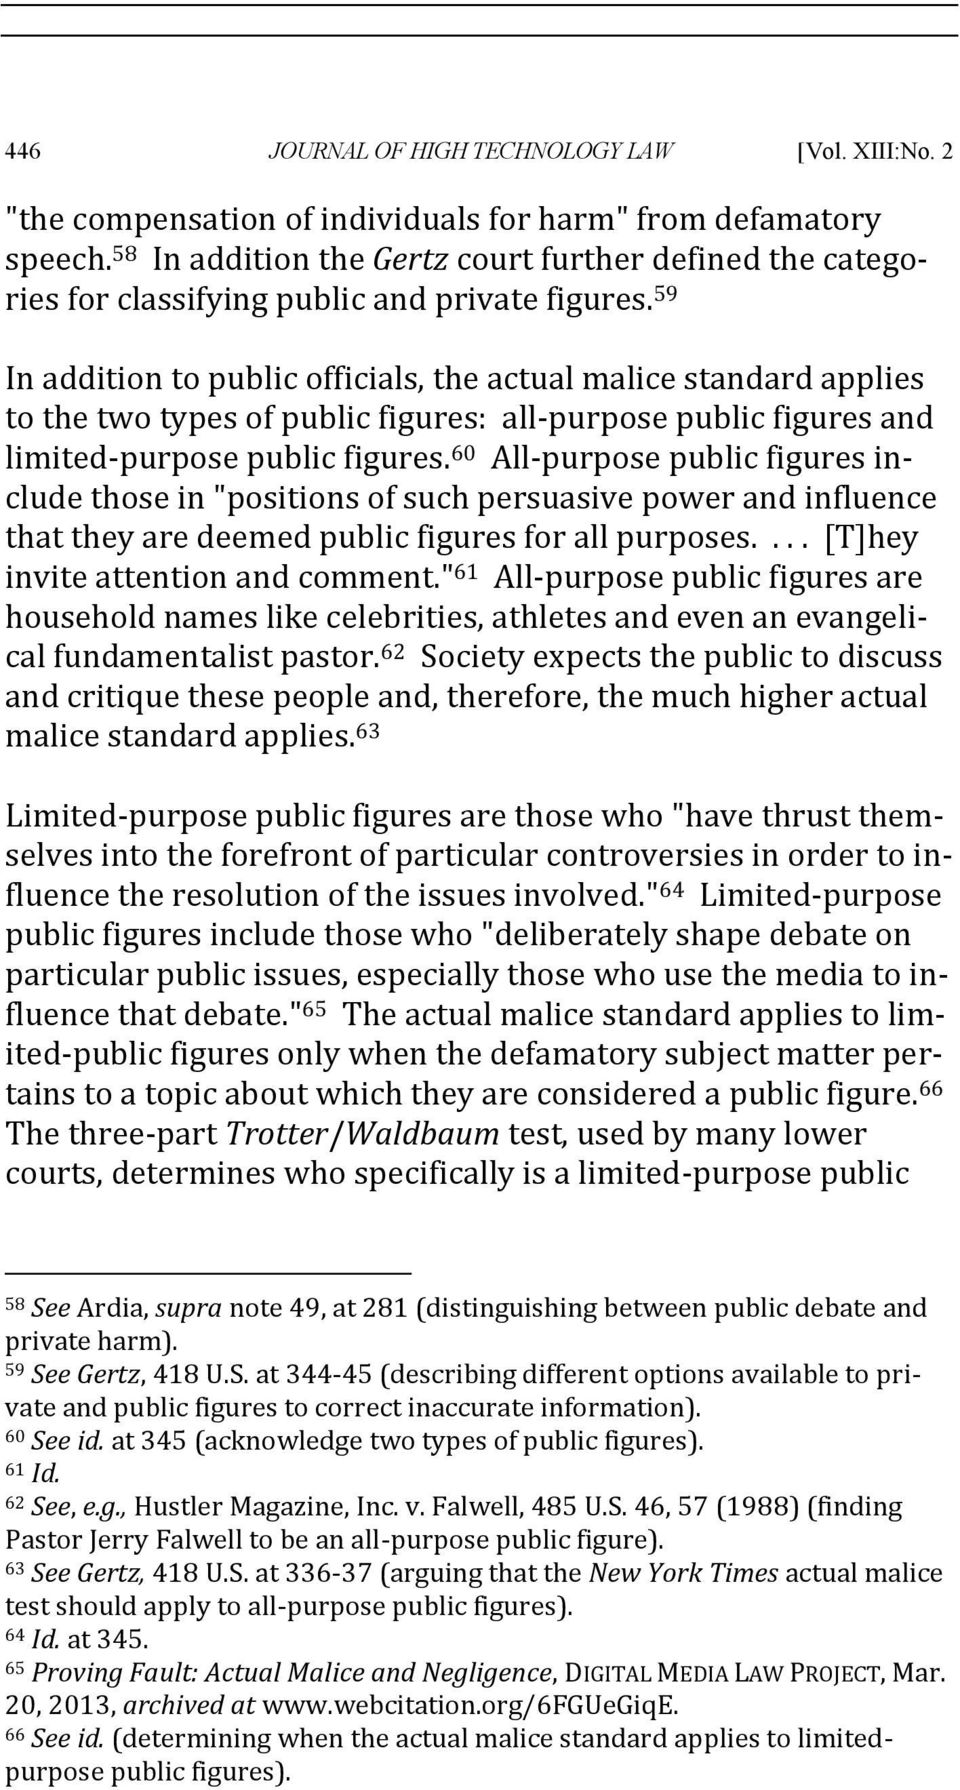 59 In addition to public officials, the actual malice standard applies to the two types of public figures: all-purpose public figures and limited-purpose public figures.